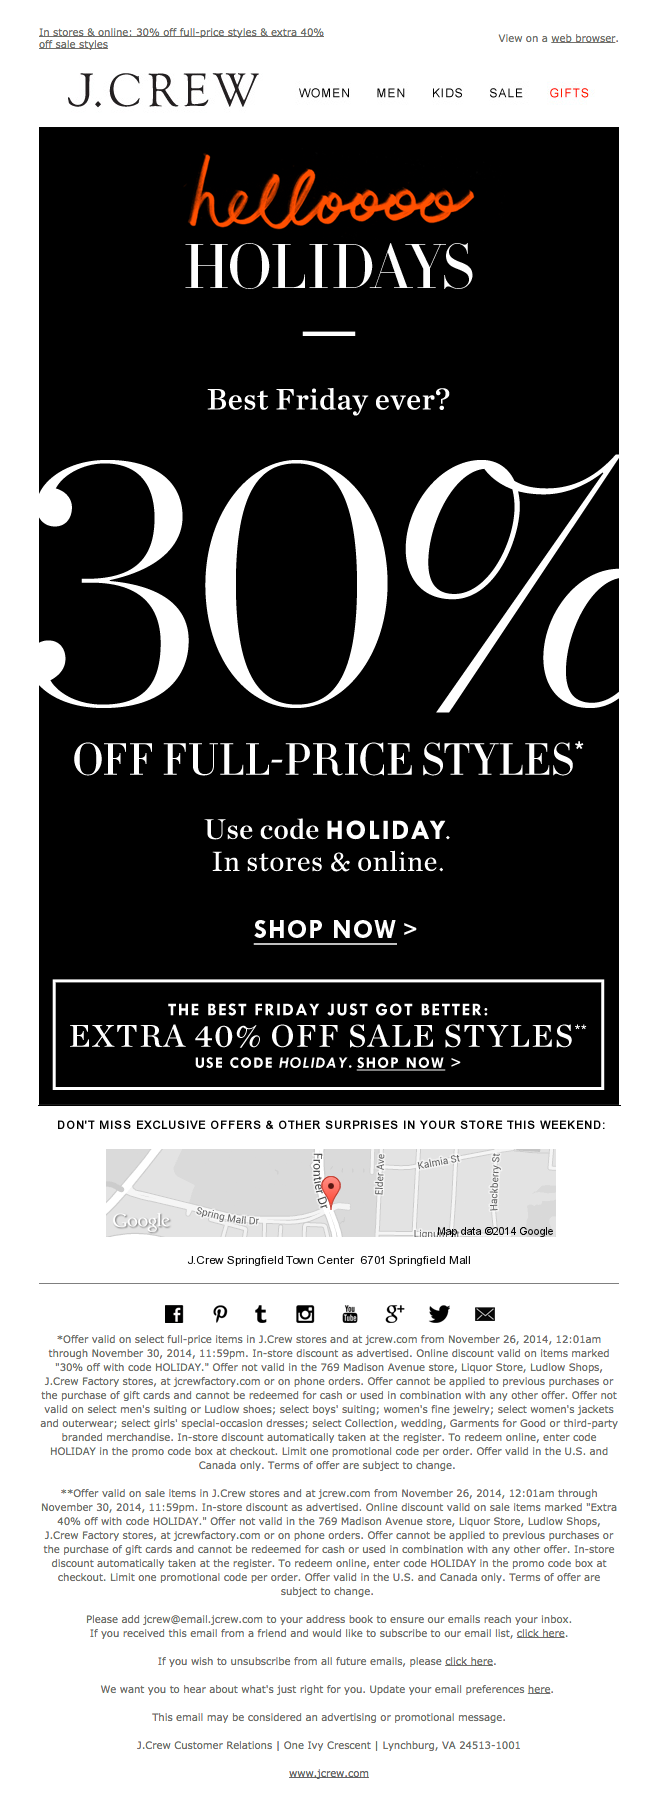 J Crew Black Friday Email Nov 28 2014 Today Is The Day To Shop 30 Off In Stores On Black Friday Email Design Black Friday Email Black Friday Design